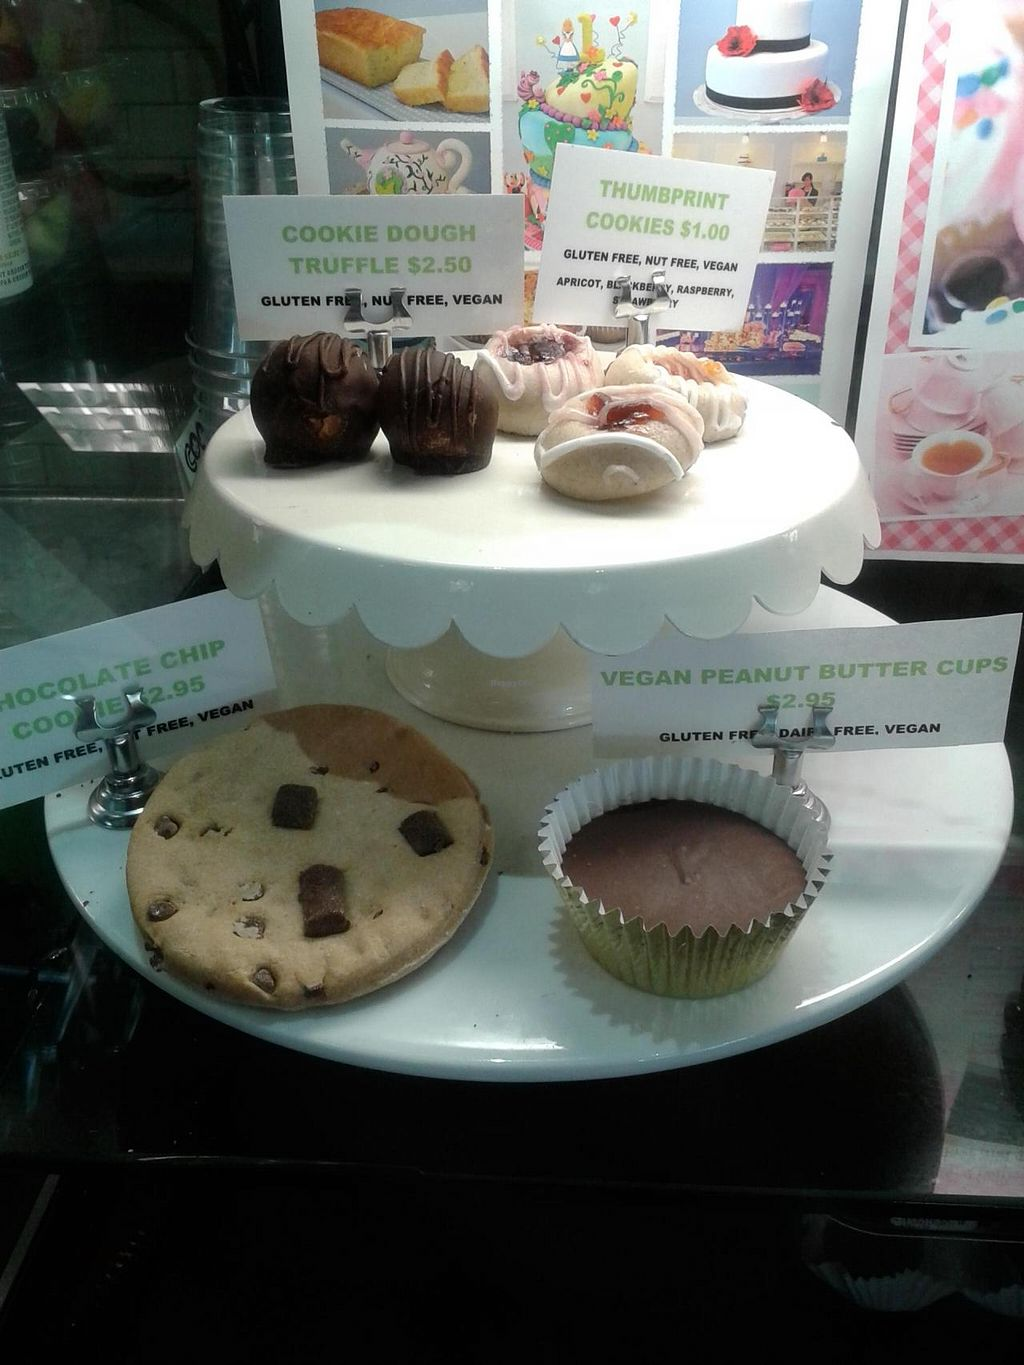 "Photo of Green Tomato Grill  by <a href=""/members/profile/chobesoy"">chobesoy</a> <br/>vegan selection plus brownies <br/> November 20, 2014  - <a href='/contact/abuse/image/41587/86113'>Report</a>"